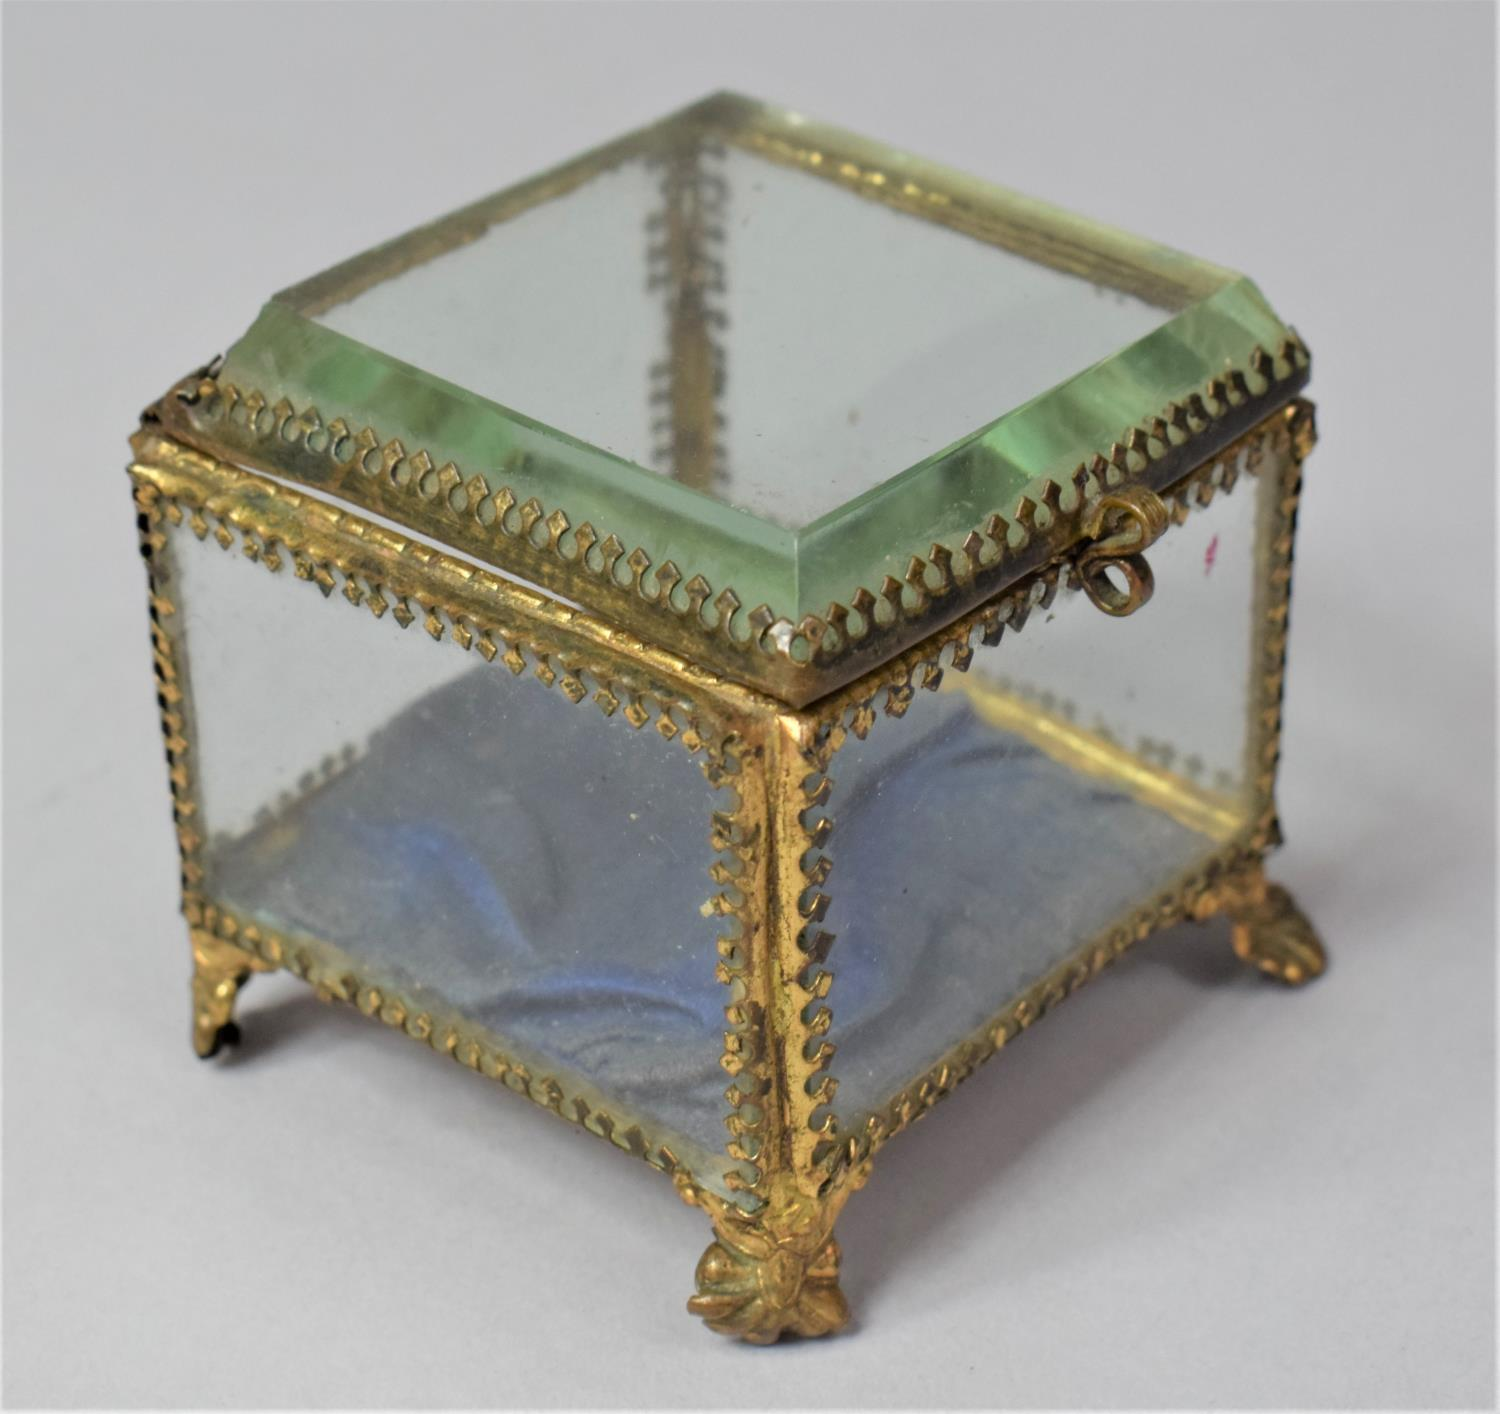 A Late 19th Century French Ormolu Framed Glass Jewellery Box on Four Scrolled Feet, 6.5cm Square - Image 3 of 3